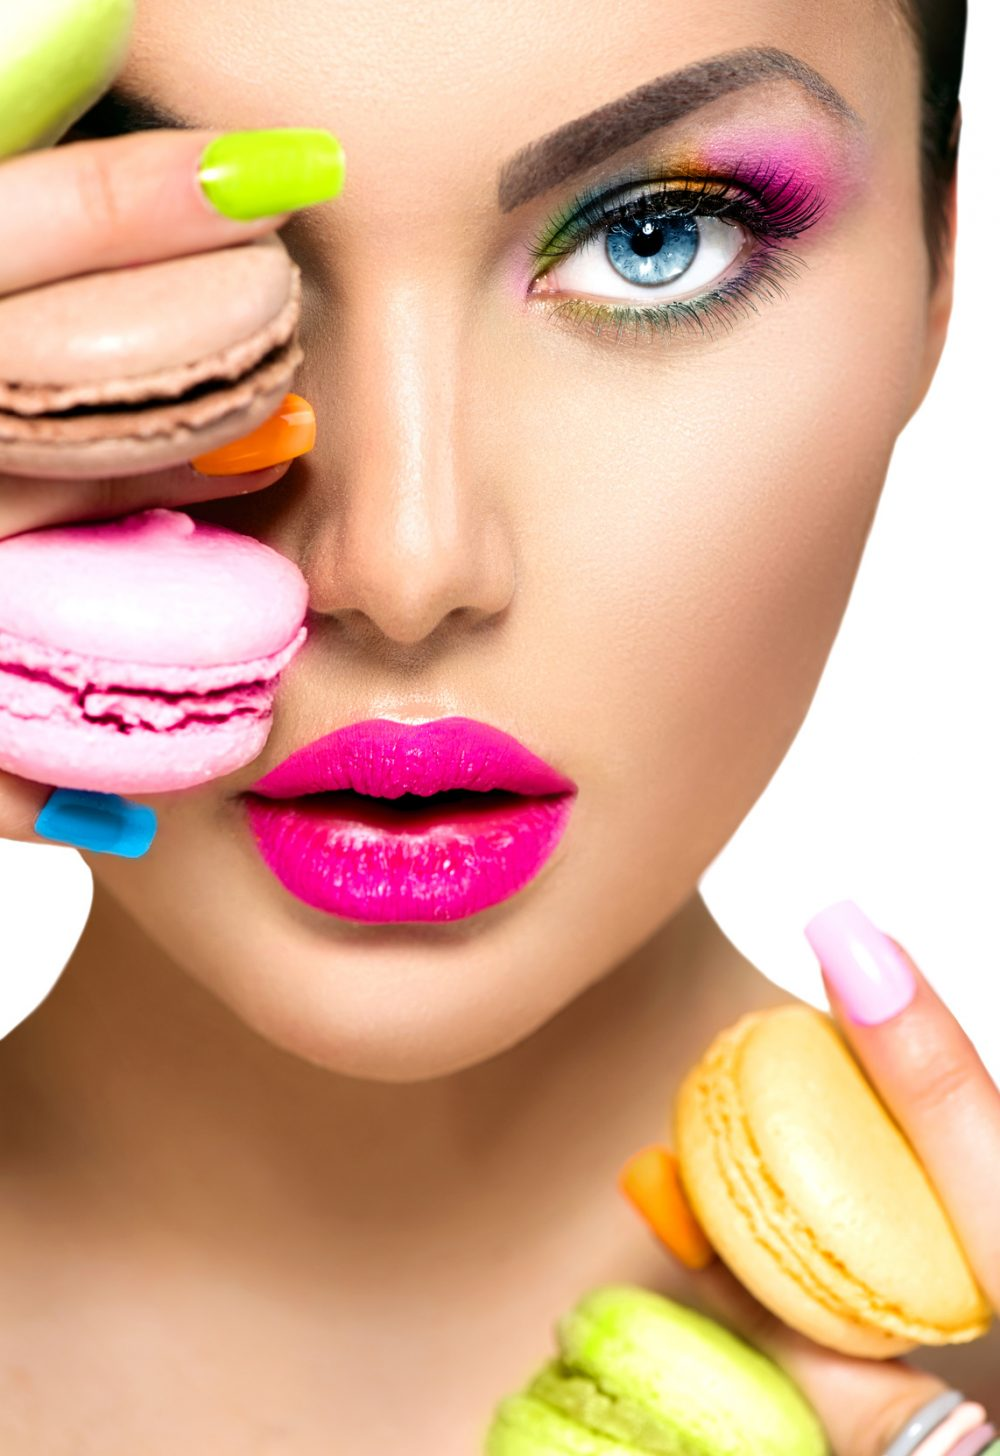 Beauty fashion model girl taking colorful macaroons